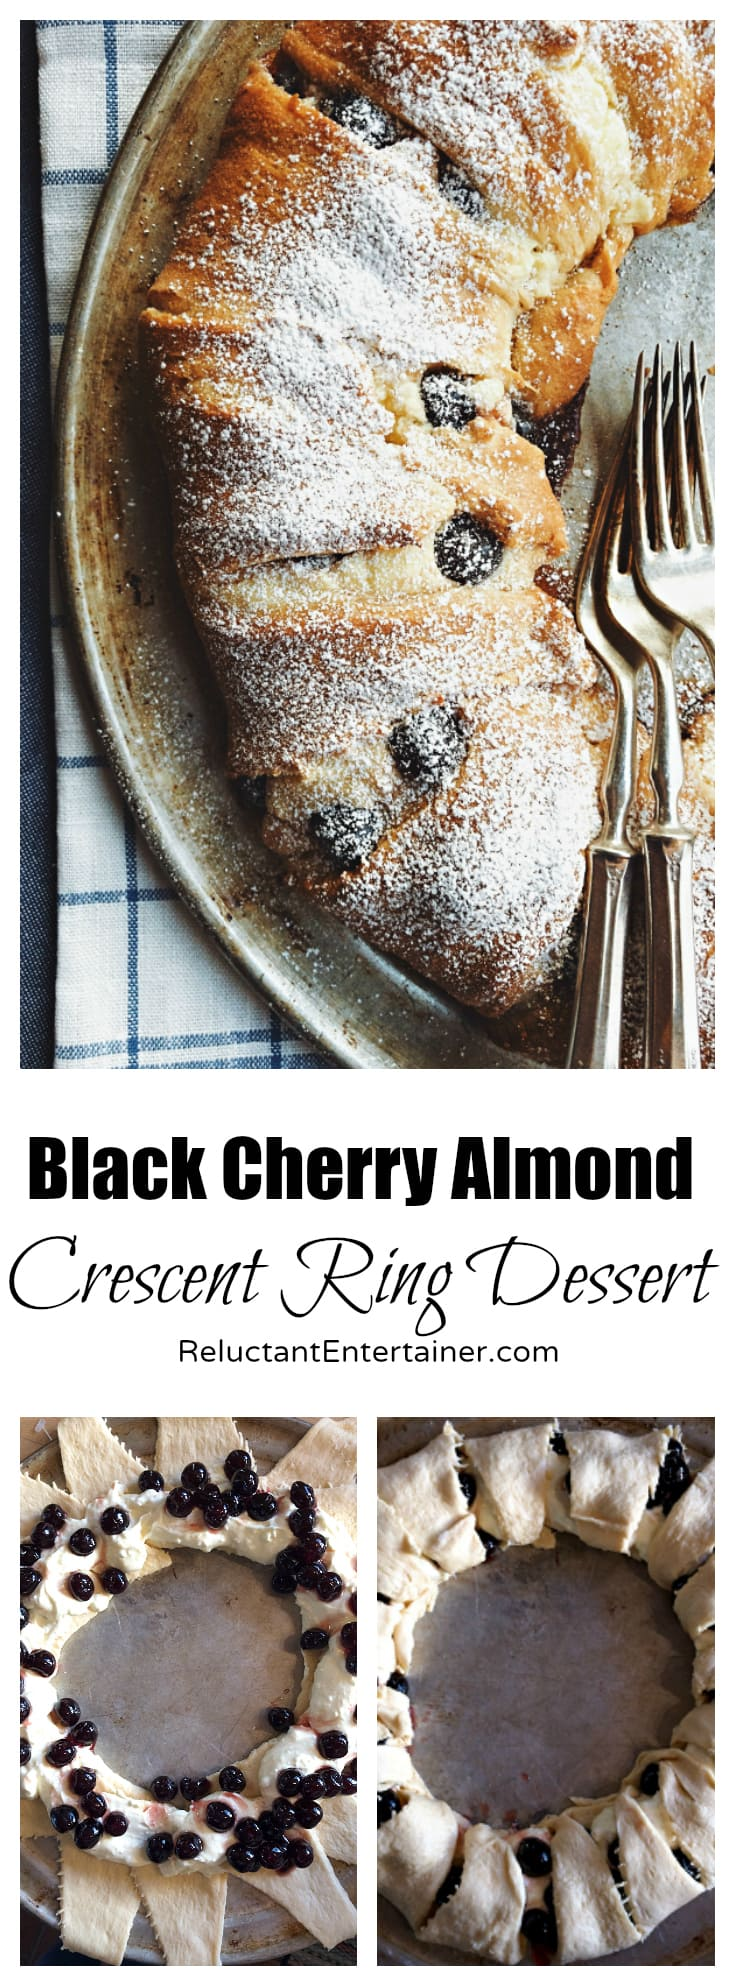 Black Cherry Almond Crescent Ring Dessert